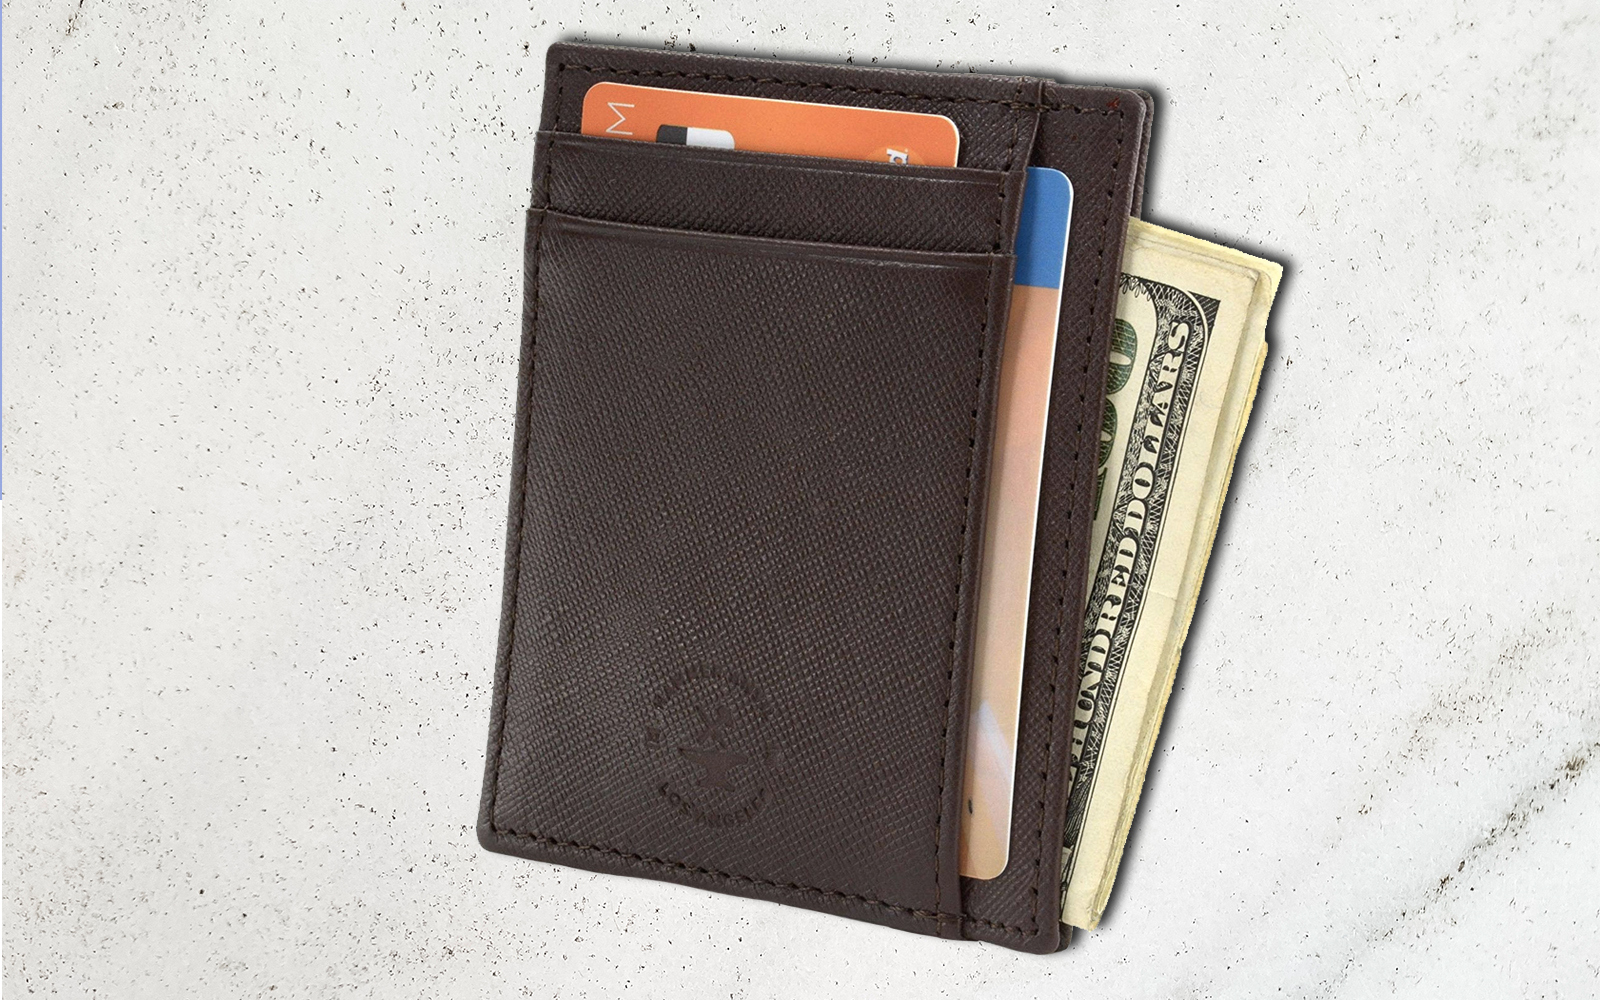 This Leather Wallet Has Over 2,000 Five-star Reviews on Amazon — and It's on Sale for $7 Right Now